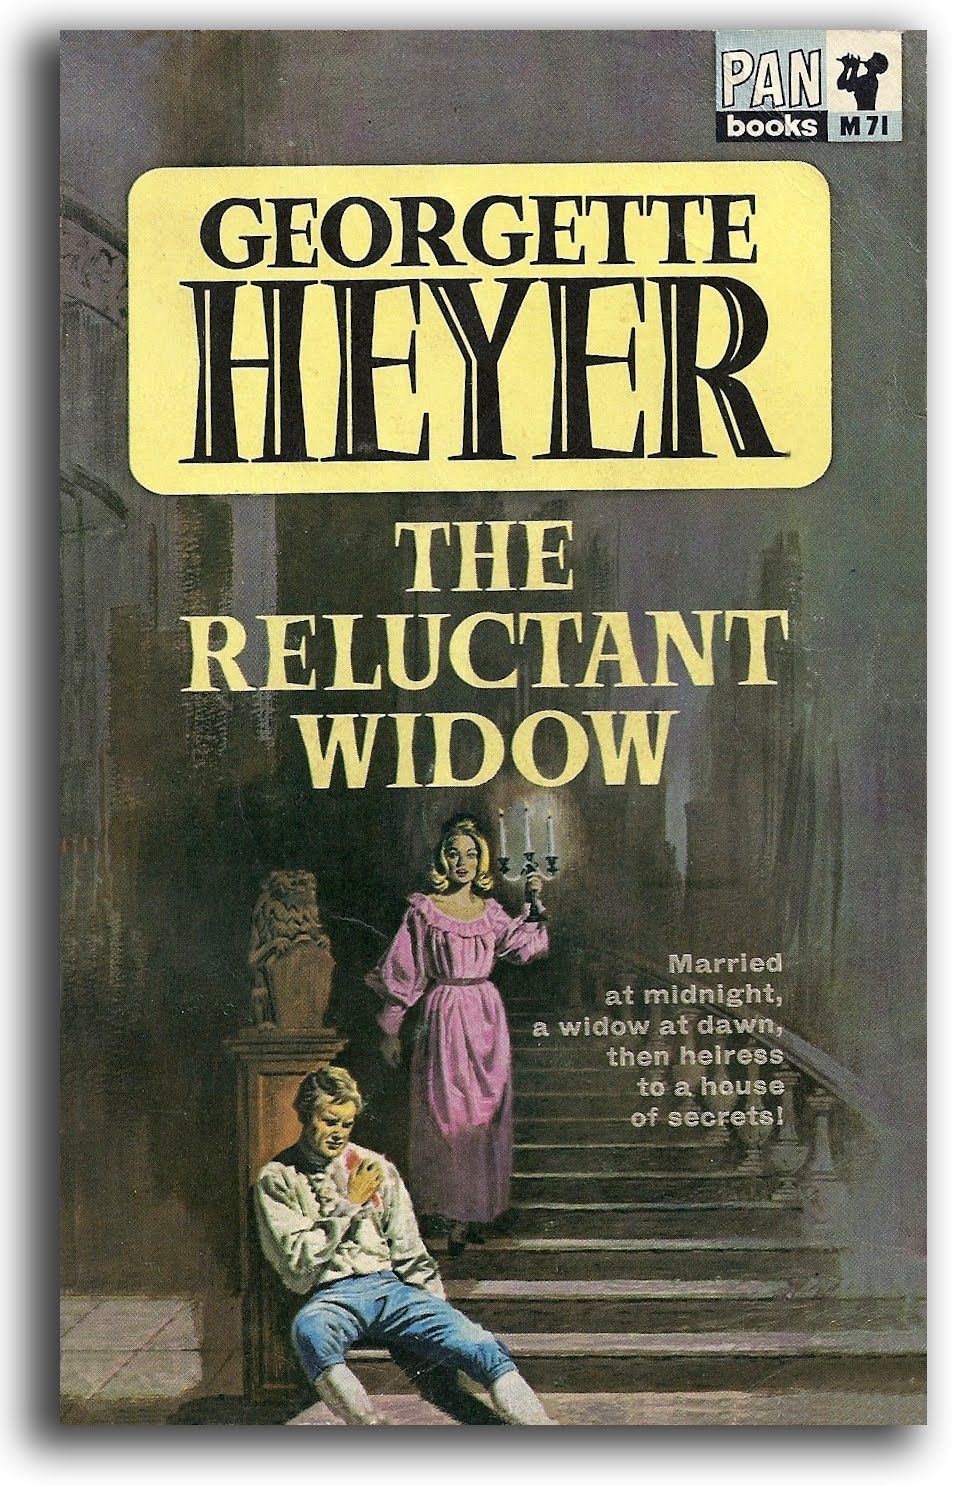 The Reluctant Widow | Georgette heyer books, Georgette heyer ...